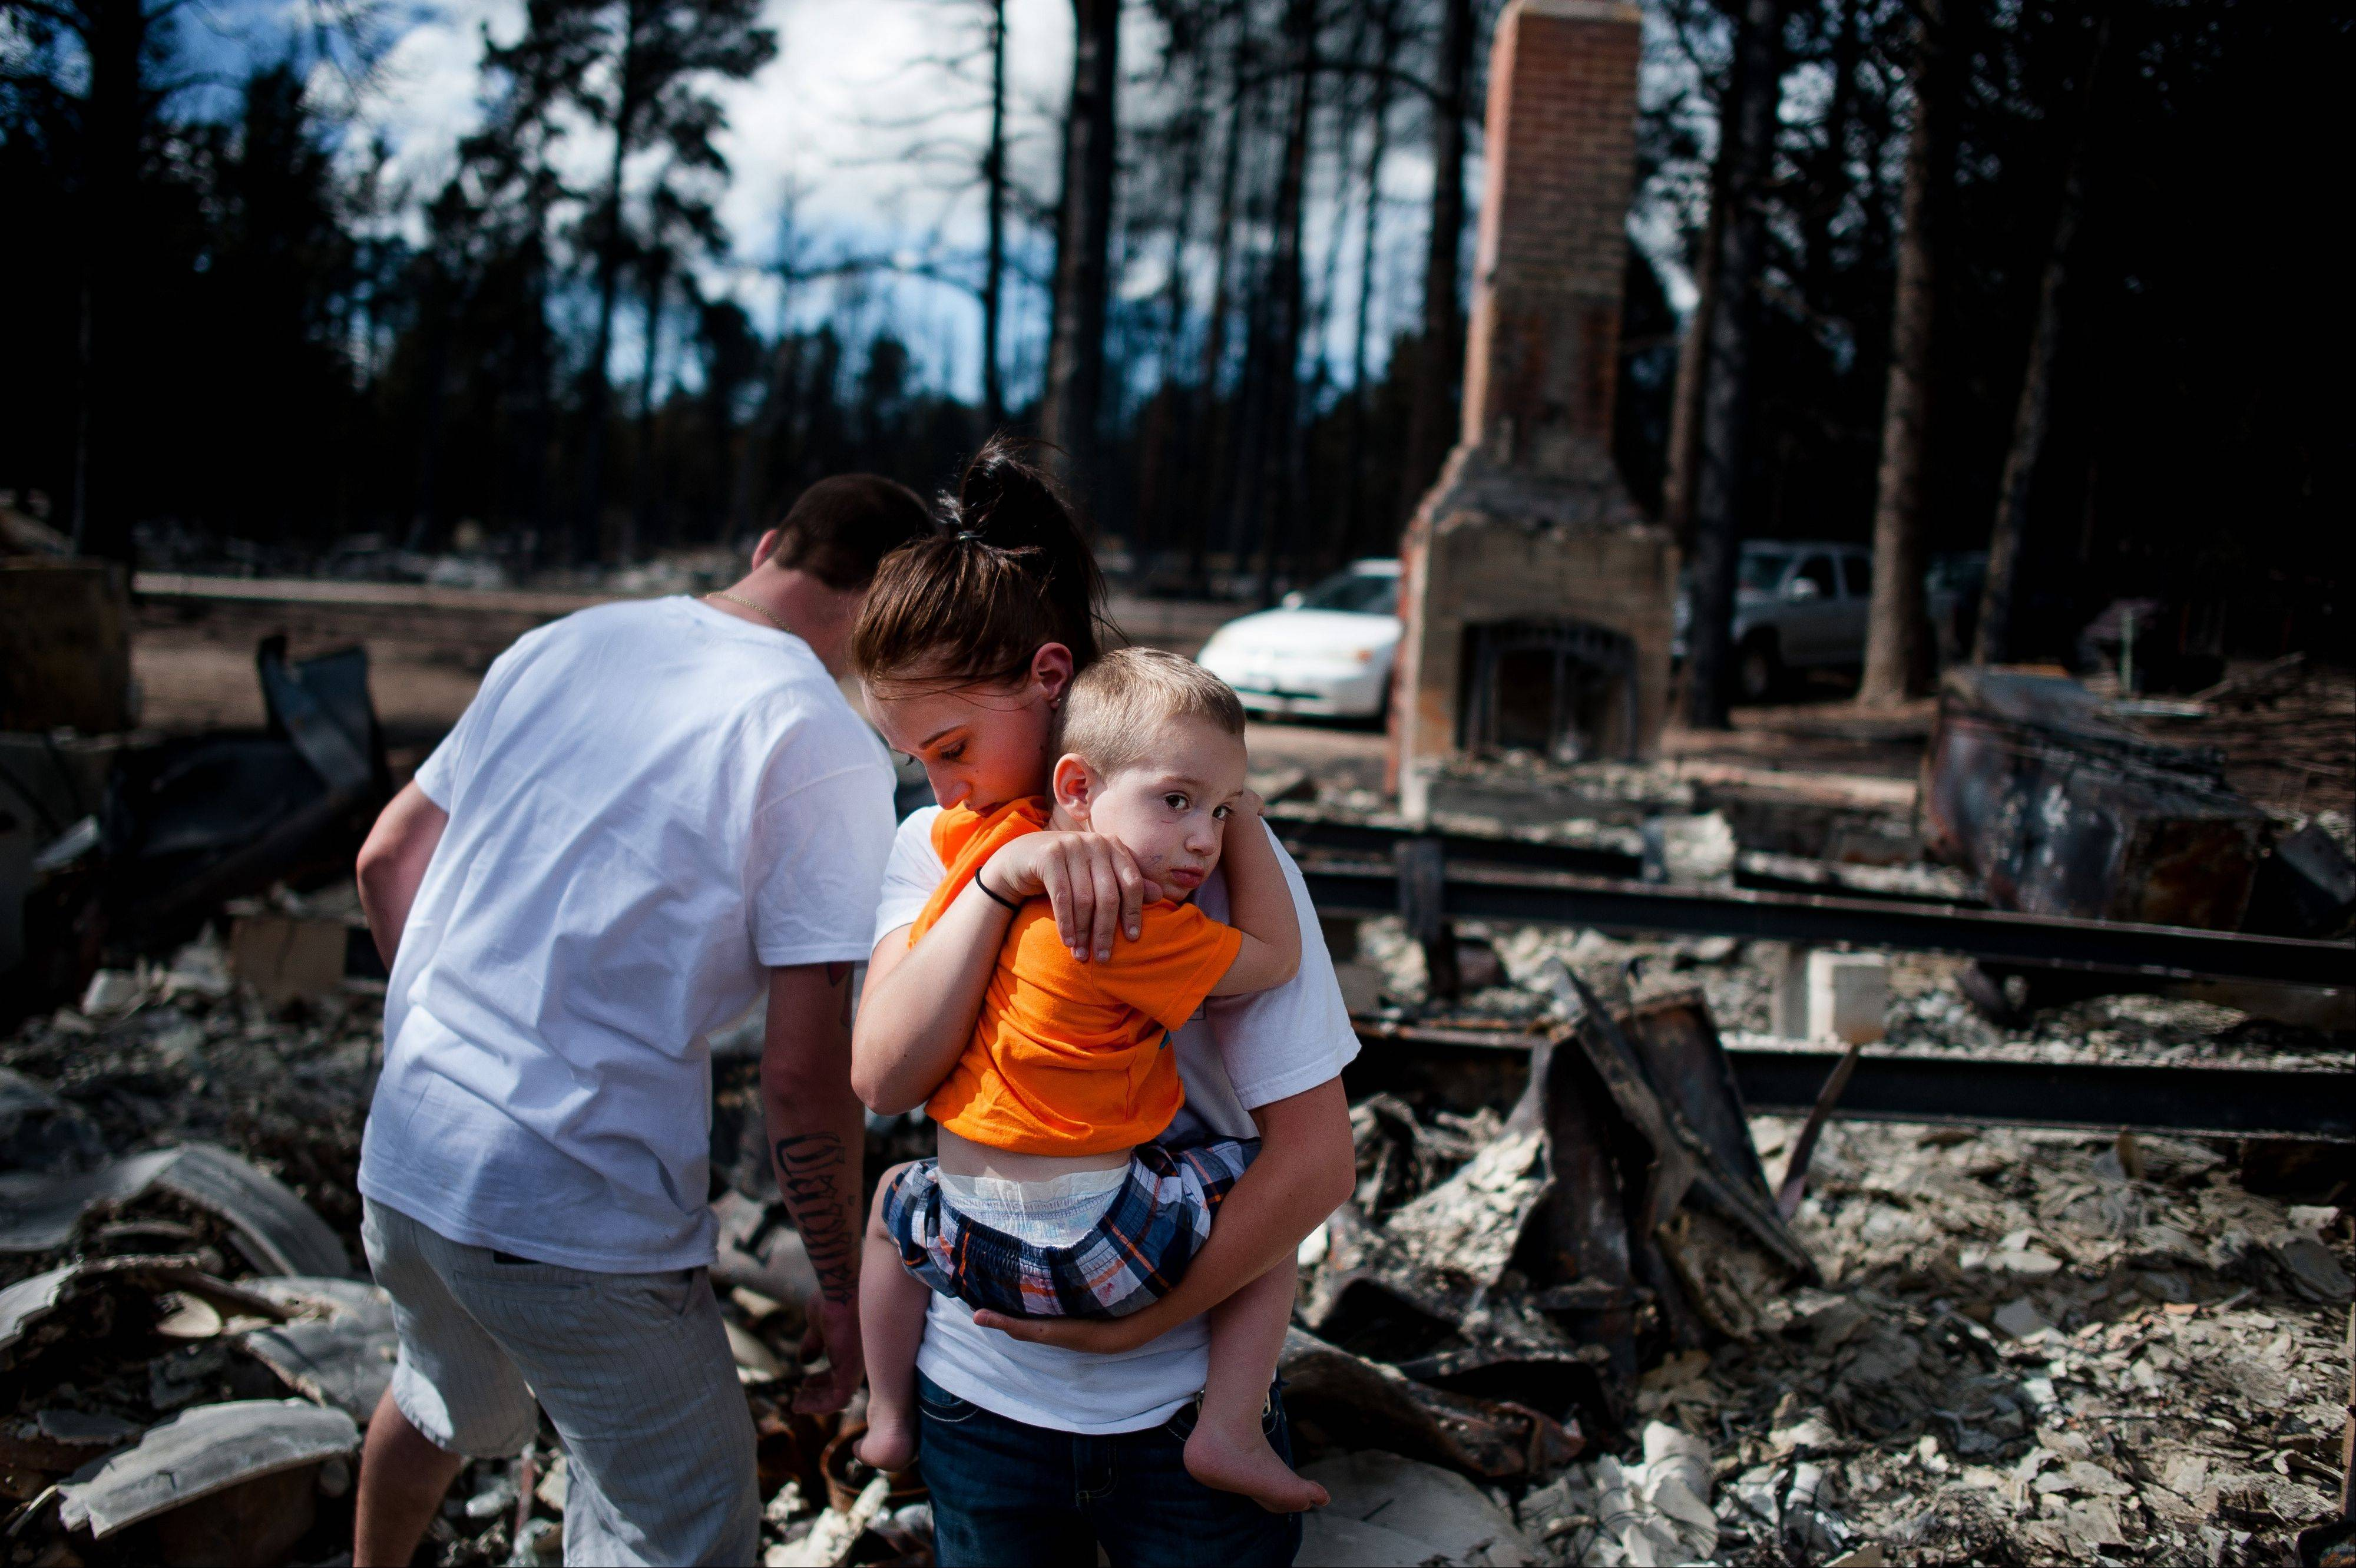 Brandy Burton carries her son Caiyleb Lewis, 2, through the rubble of her family's home that was completely destroyed in the Black Forest Fire, Tuesday, June 18, 2013, in Colorado Springs, Colo. Residents were allowed back into the area for a short period of time to view the properties that sustained the most damage from the fire. The Black Forest Fire, the most destructive wildfire in Colorado history, has destroyed 502 homes and charred more than 22 square miles. It was 85 percent contained Tuesday.